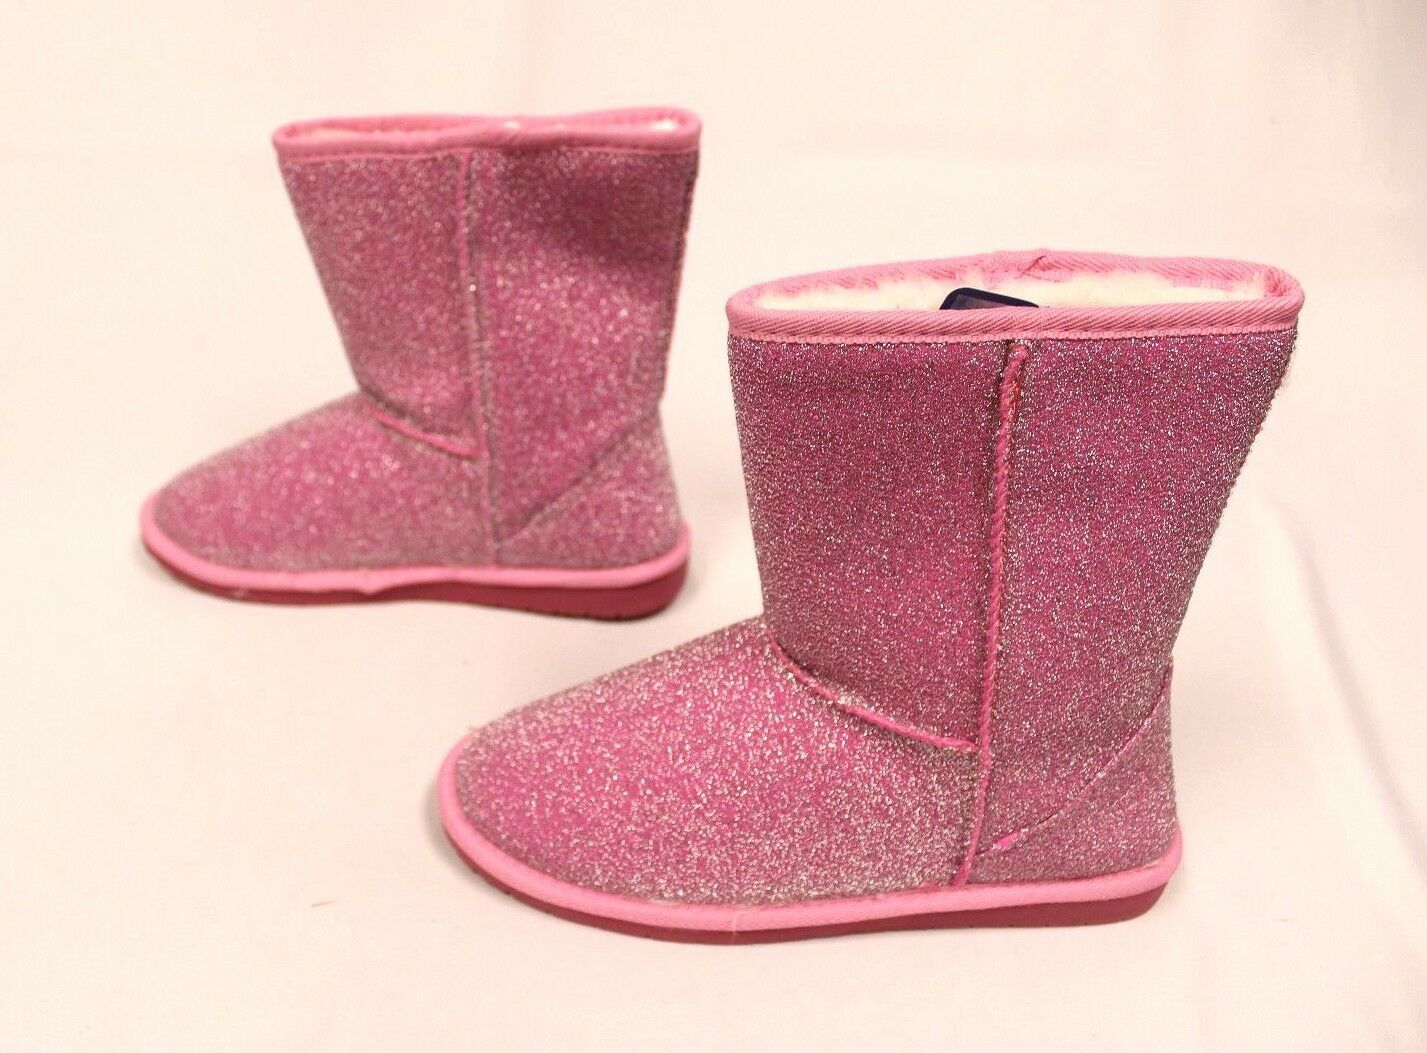 Dawgs Women's 9-Inch Frost Glitter Boots GG8 Soft Pink Size 9 .99